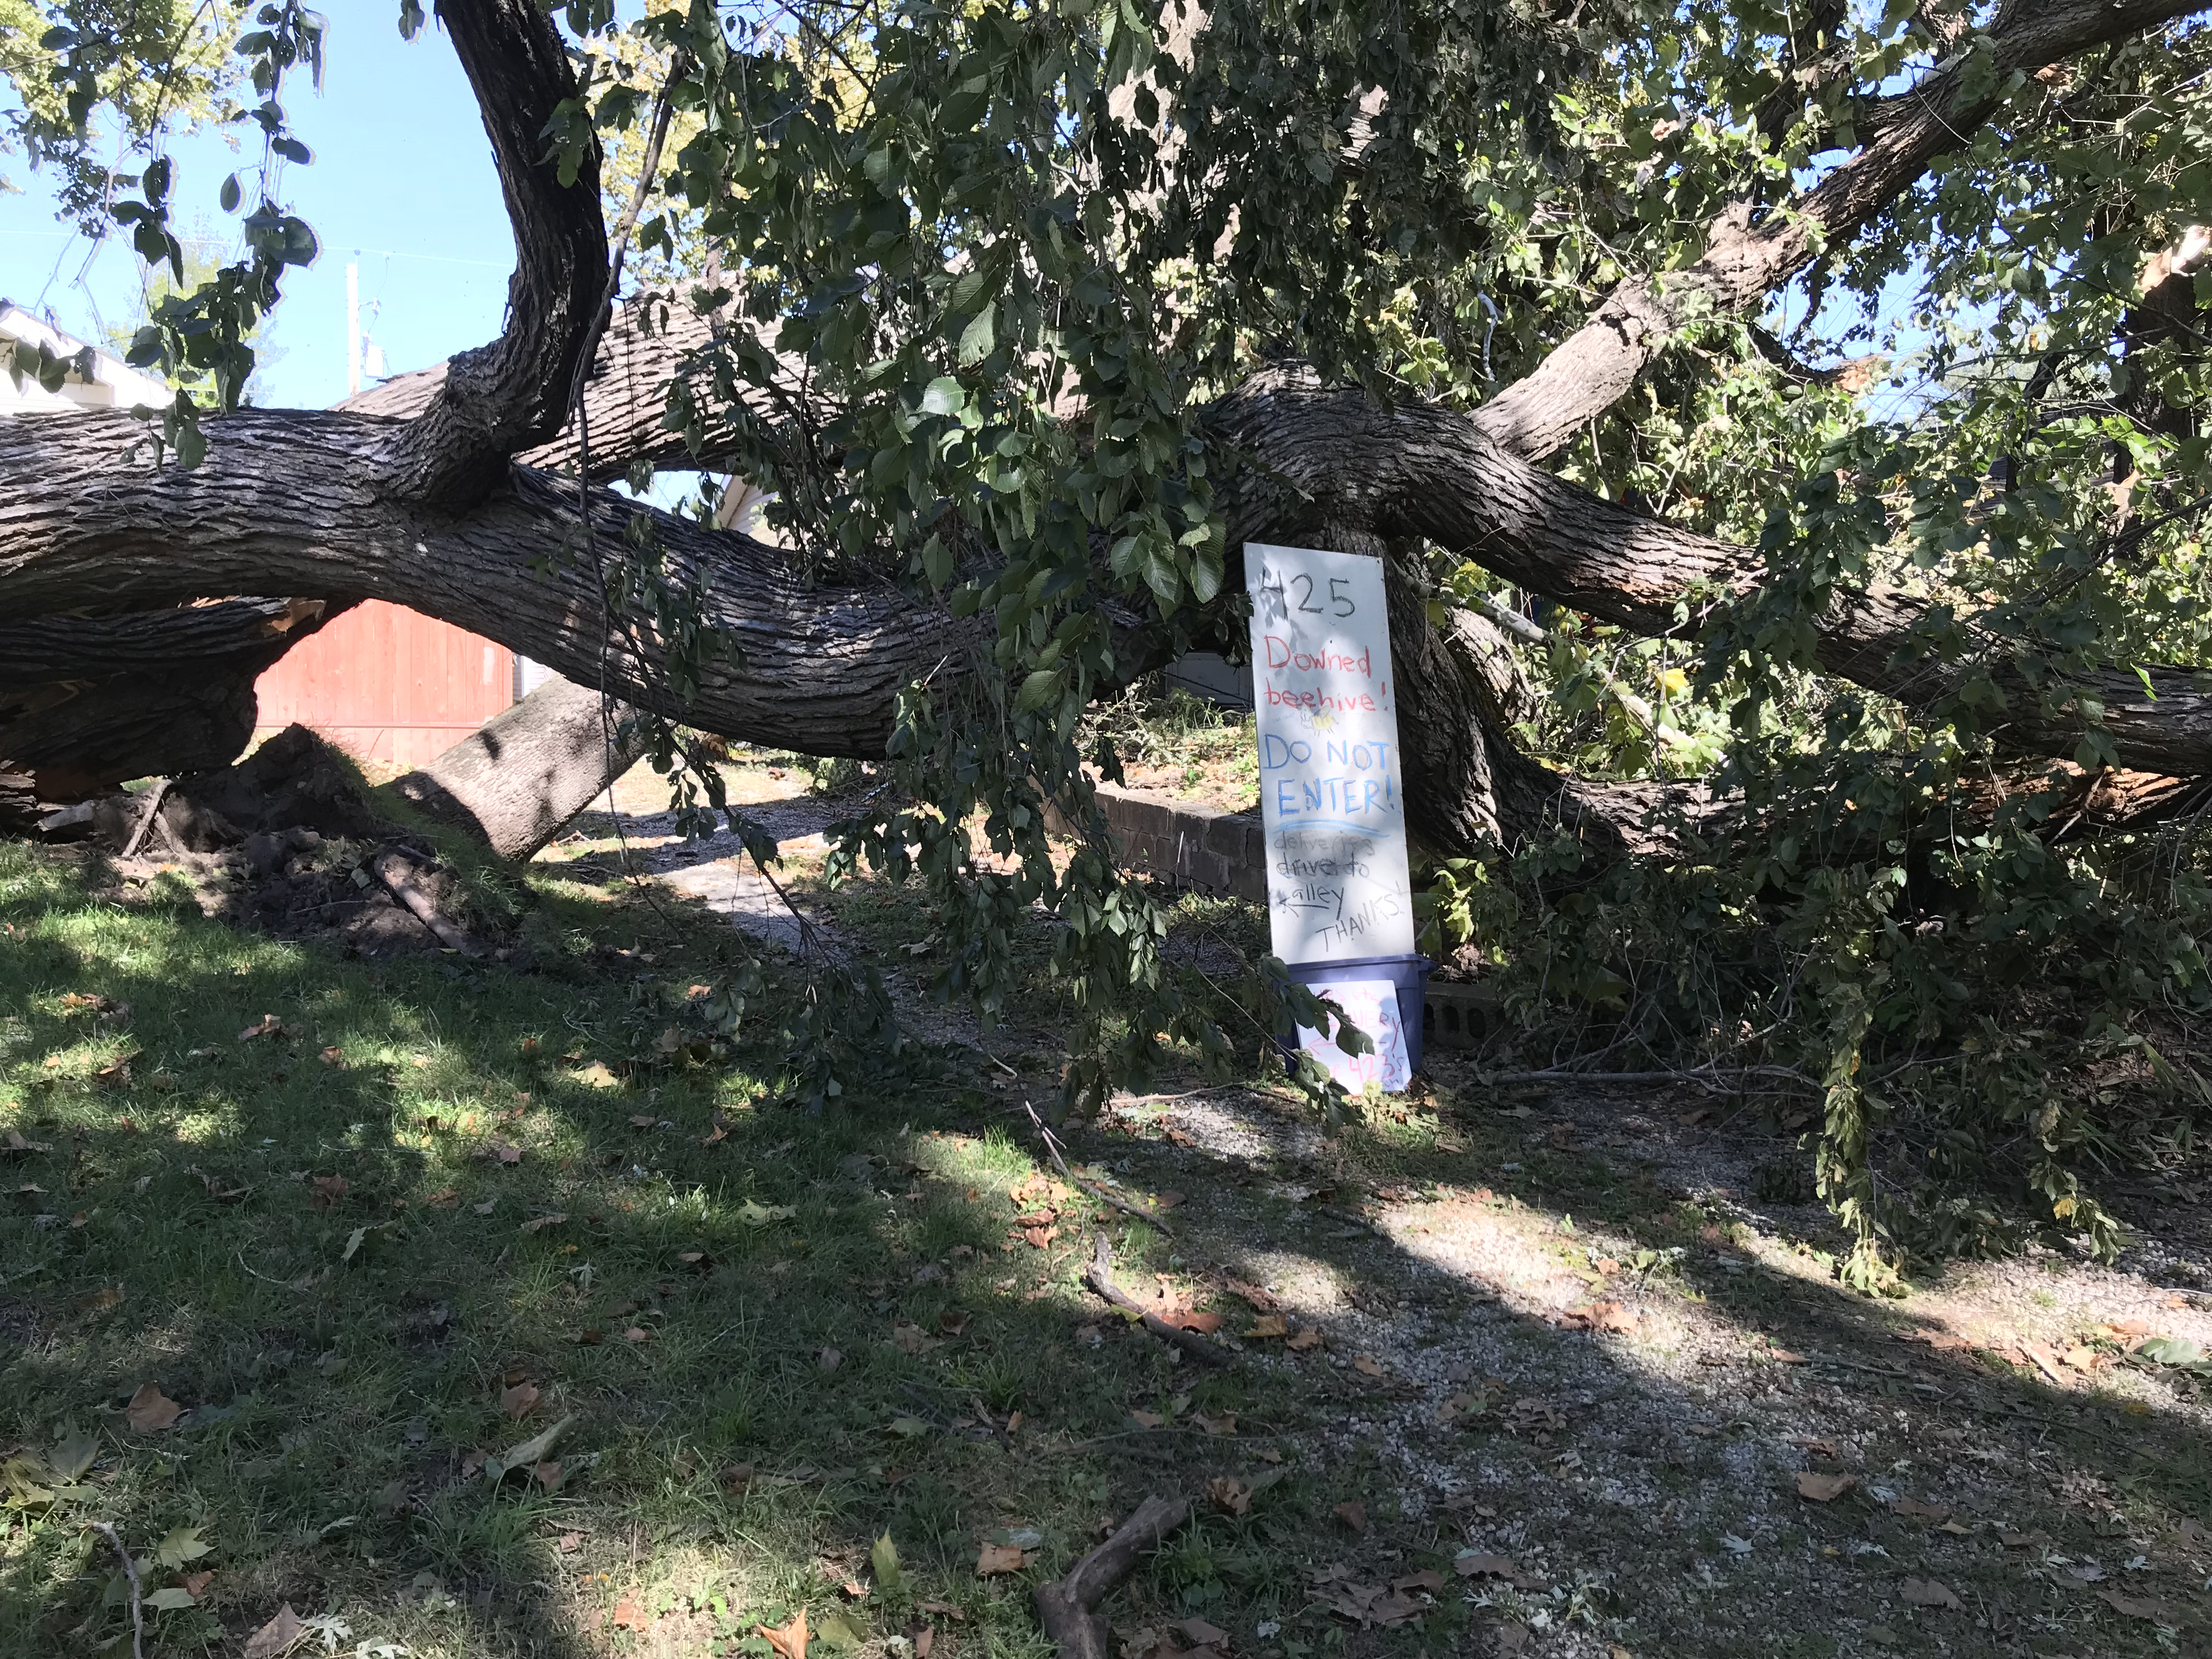 A Do Not Enter sign was installed to keep onlookers away from a beehive in one of the branches of this downed elm tree. (Photo by Danny Mantyla)